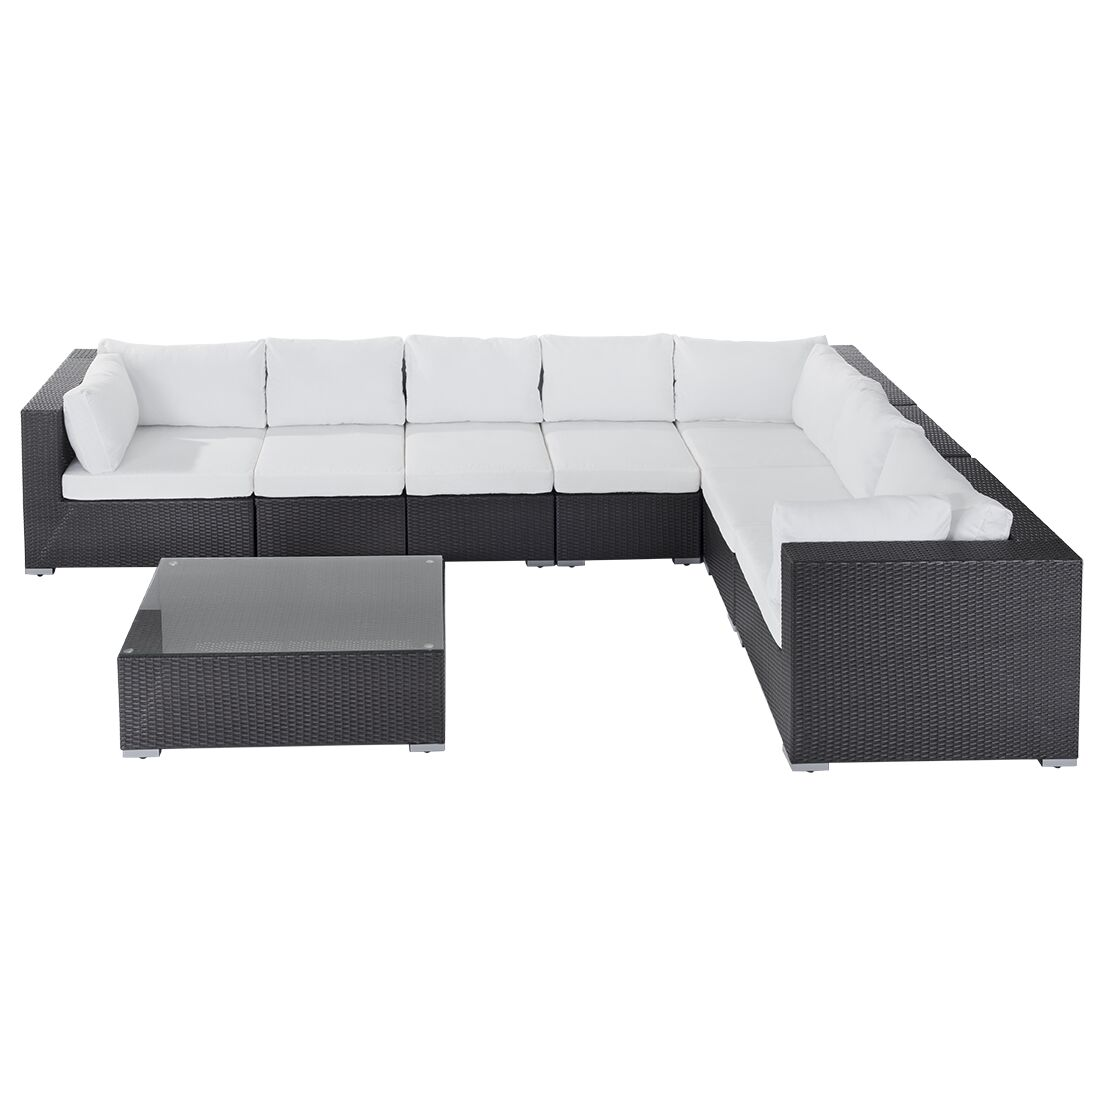 Haynie 8 Piece Sectional Set with Cushions